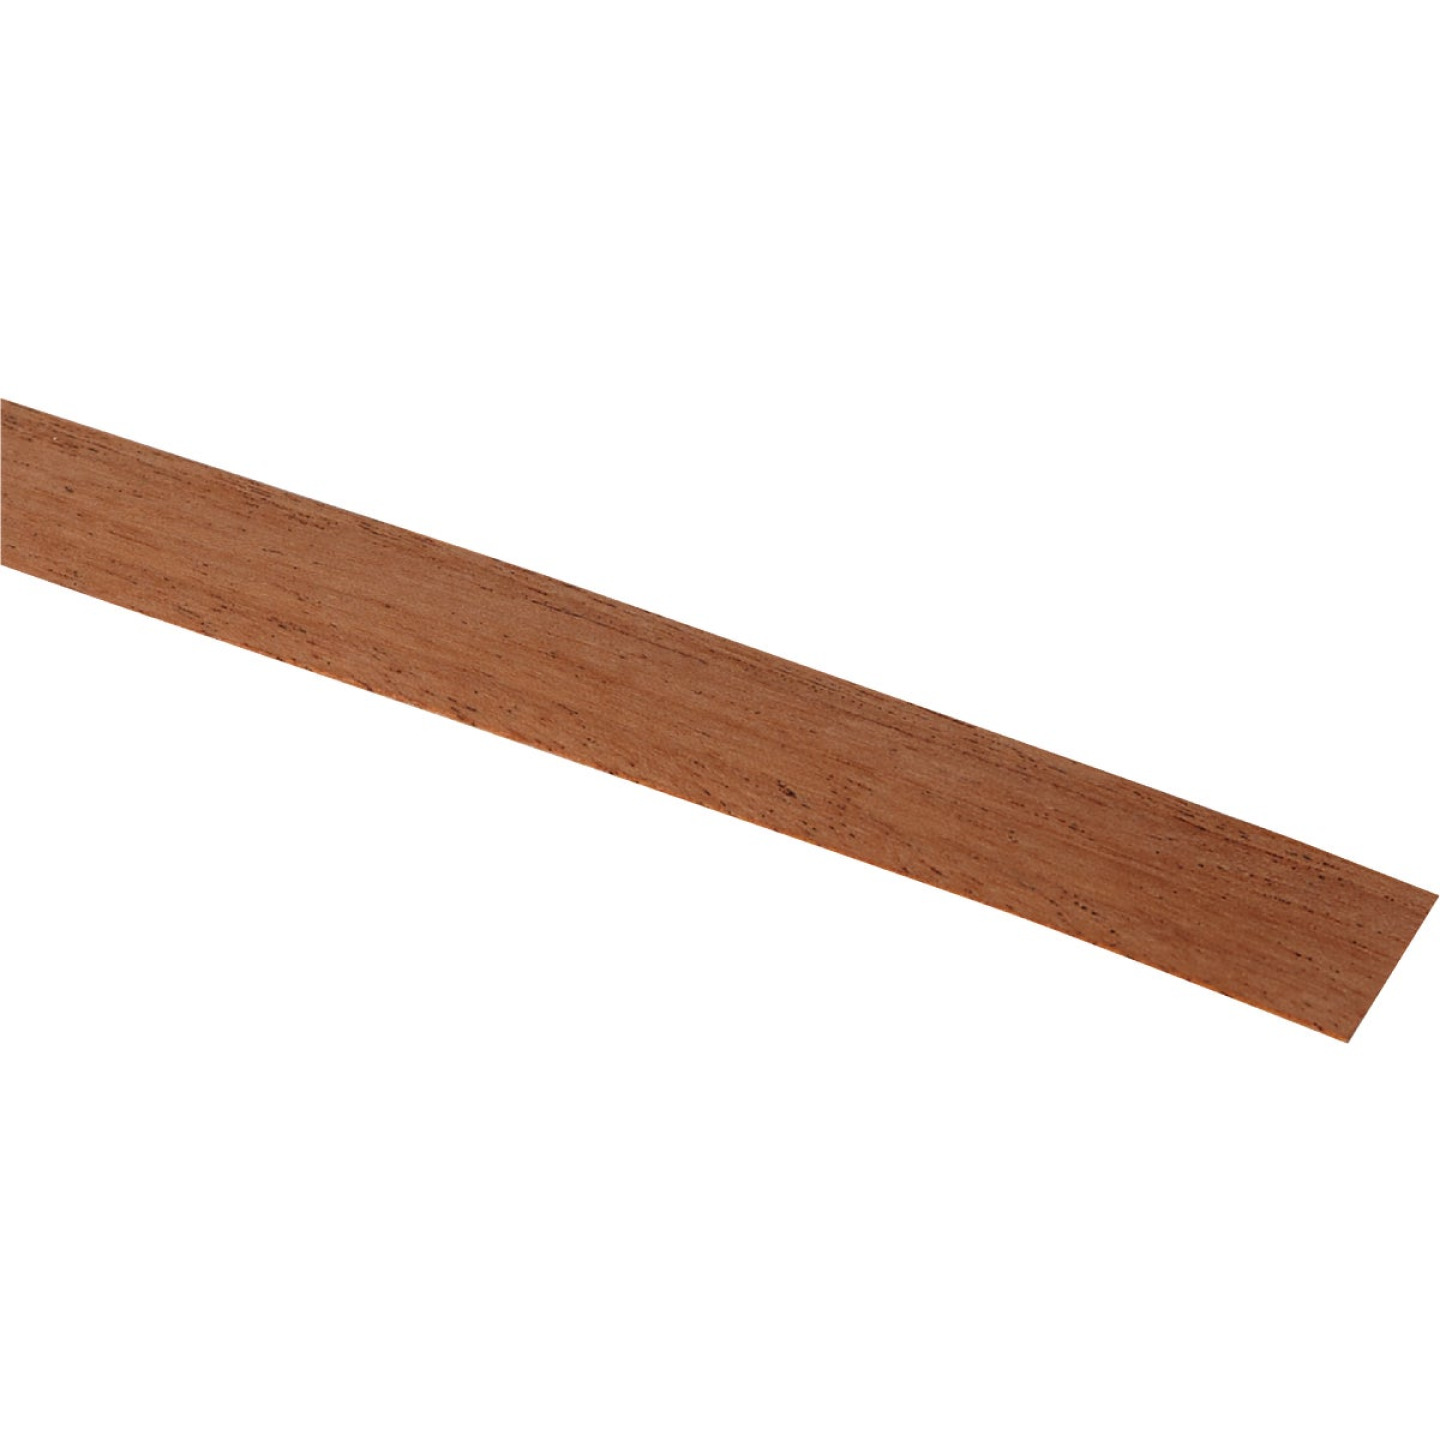 Cloverdale Band-It 3/4 In. x 8 Ft. Mahogany Wood Veneer Edging Image 2